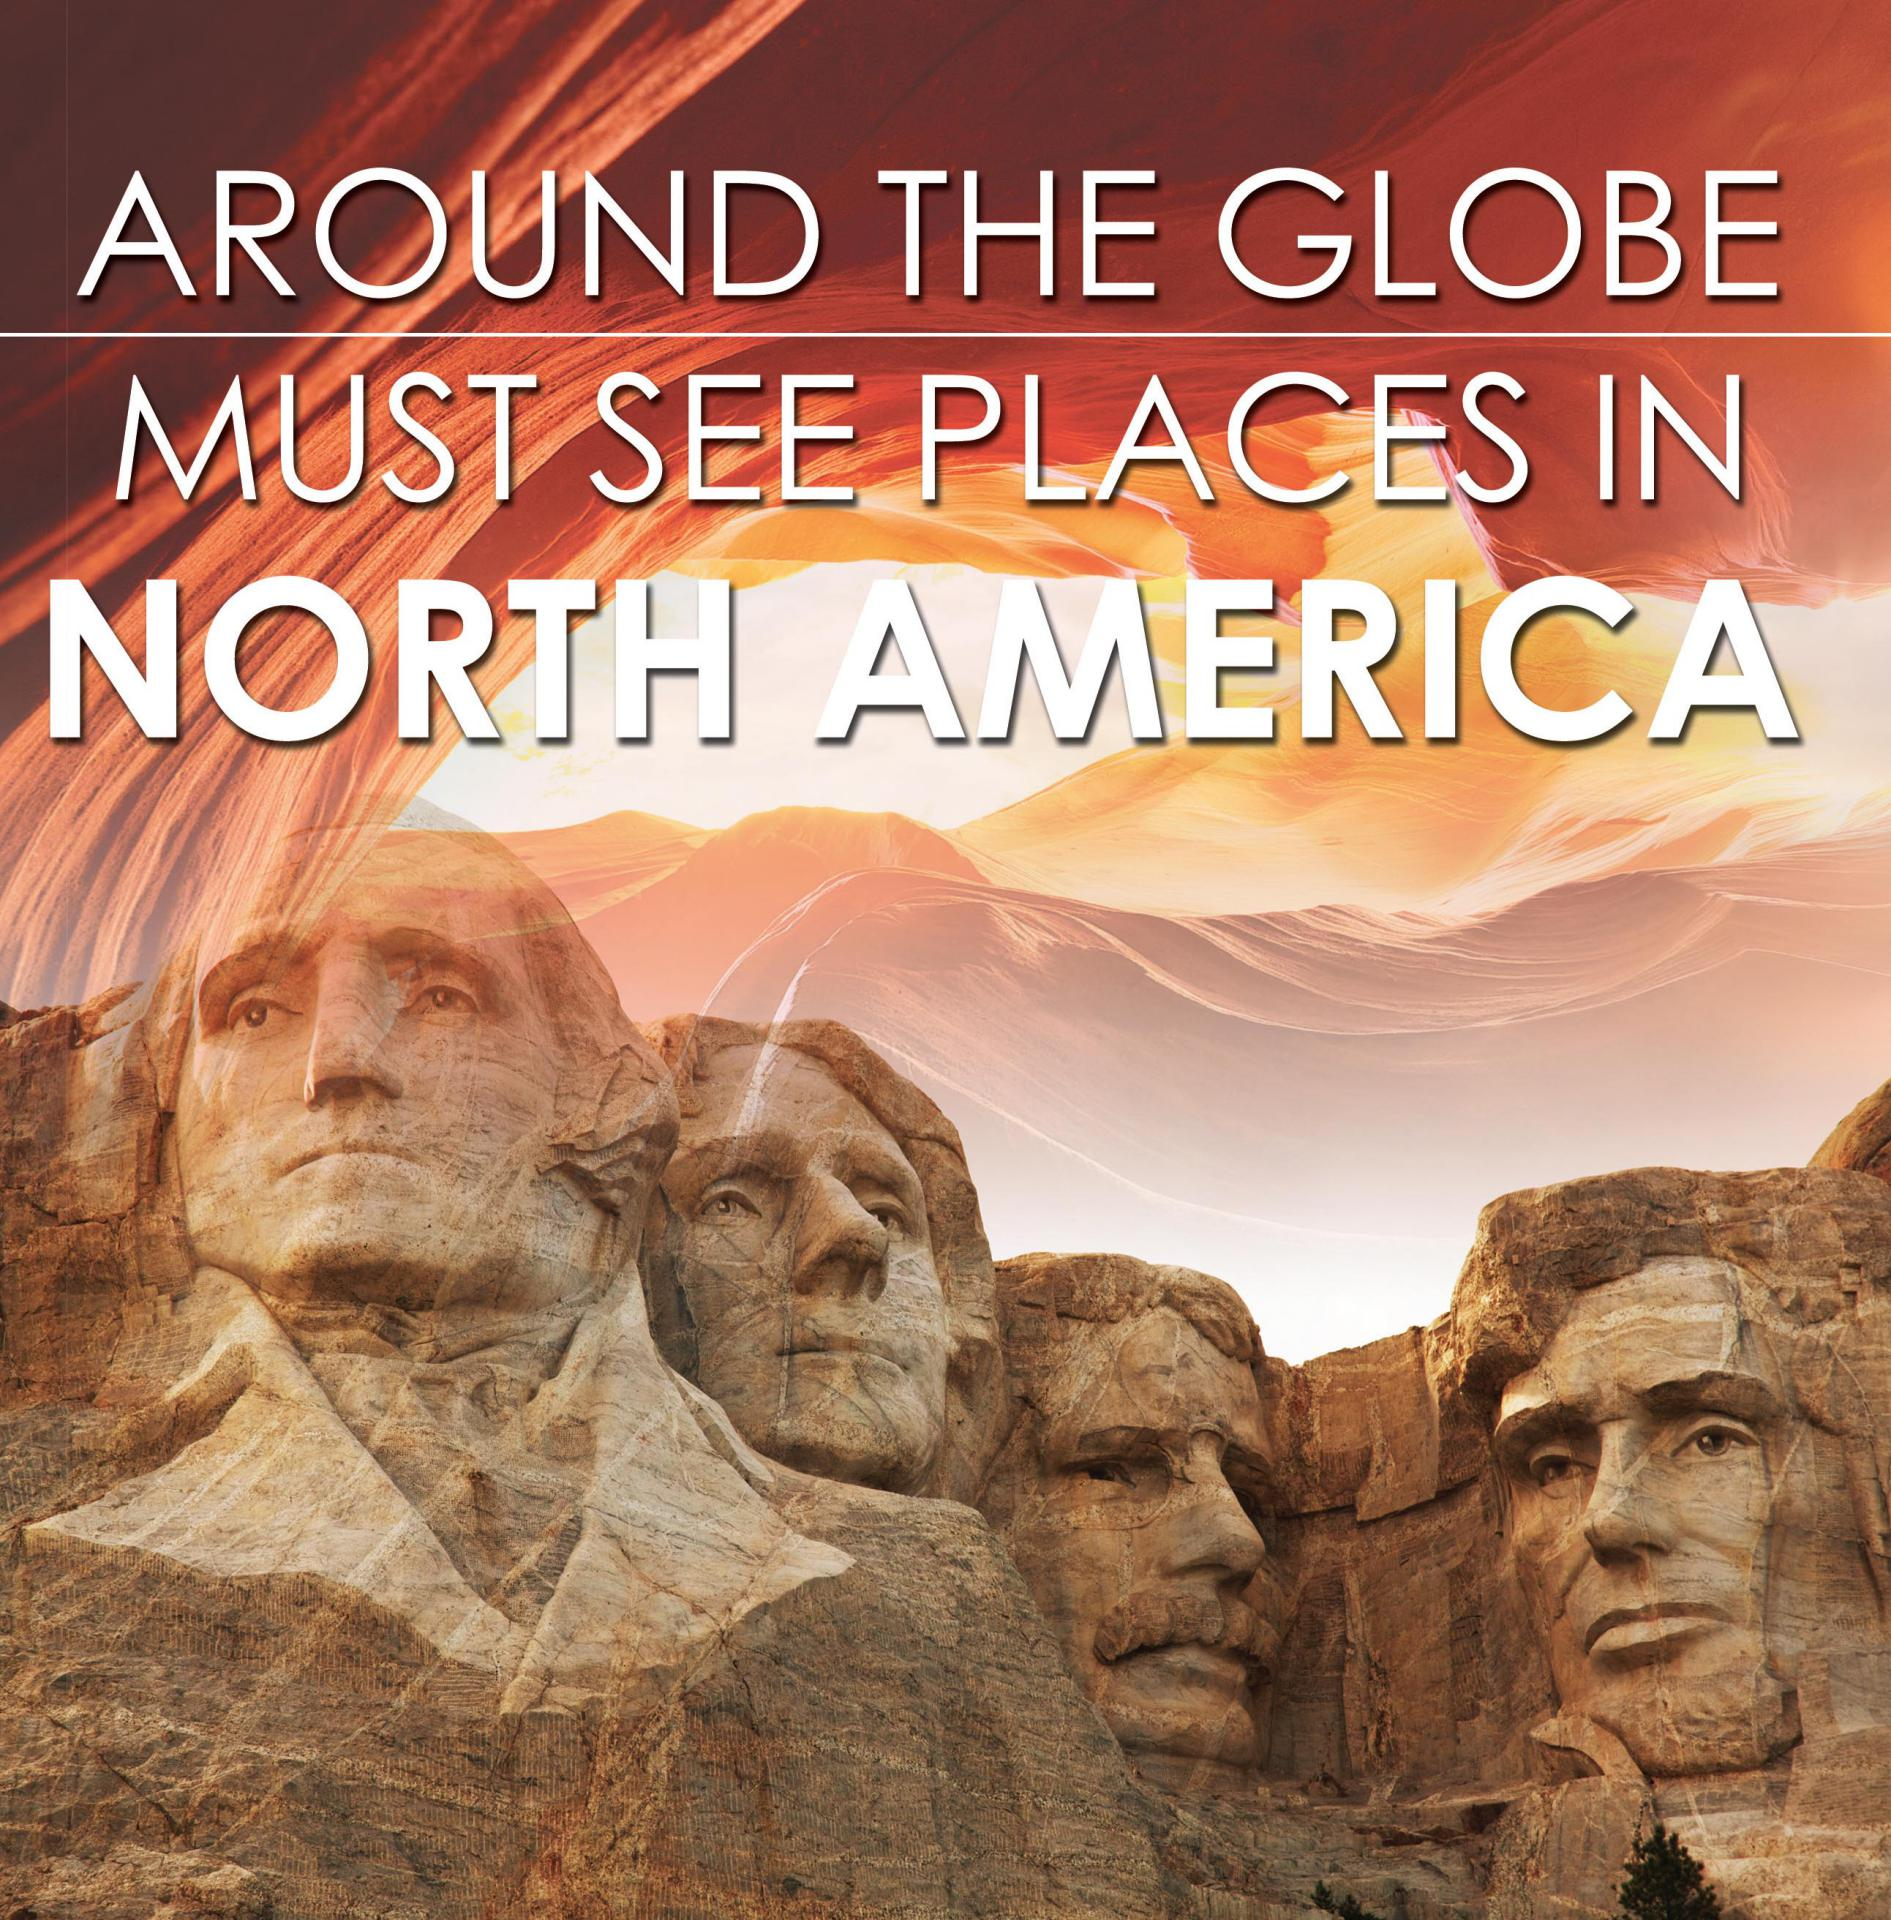 Around The Globe - Must See Places in North America North America Travel Guide for Kids